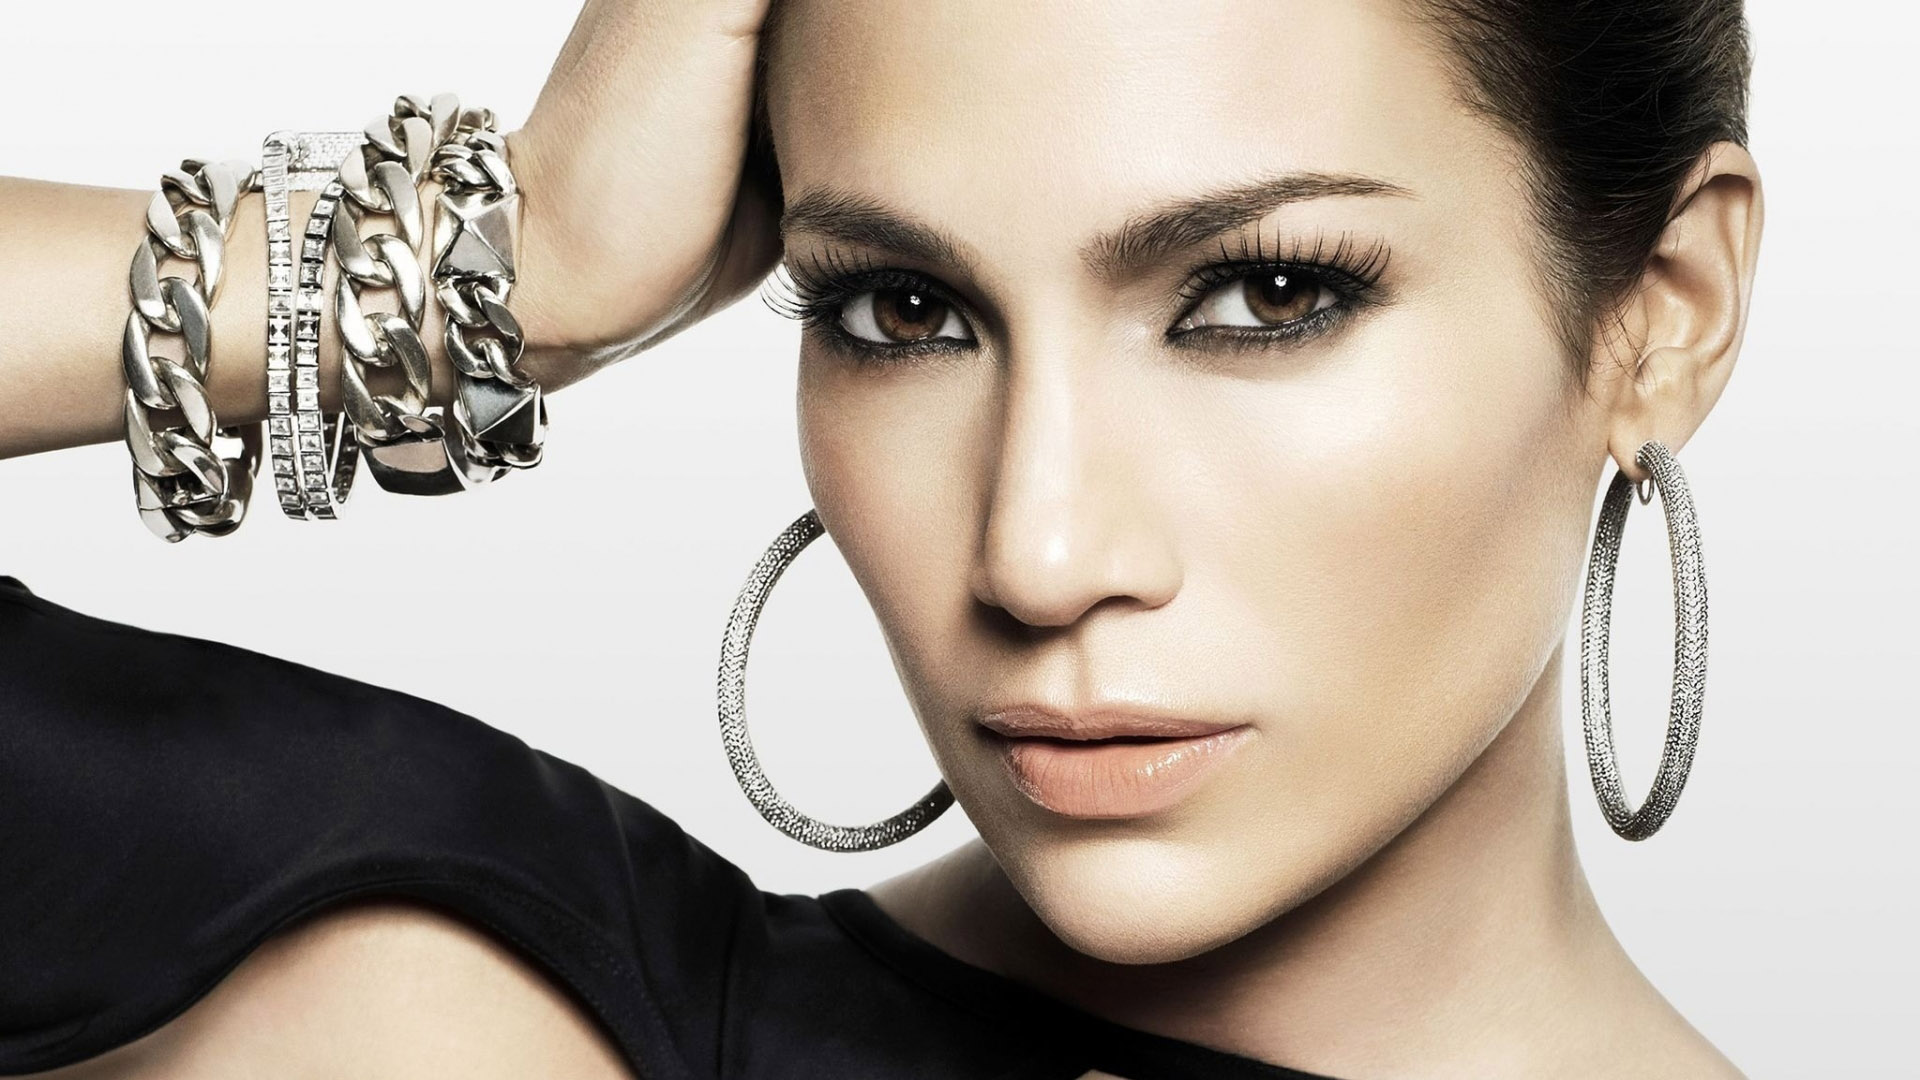 Jennifer Lopez Wallpaper 25